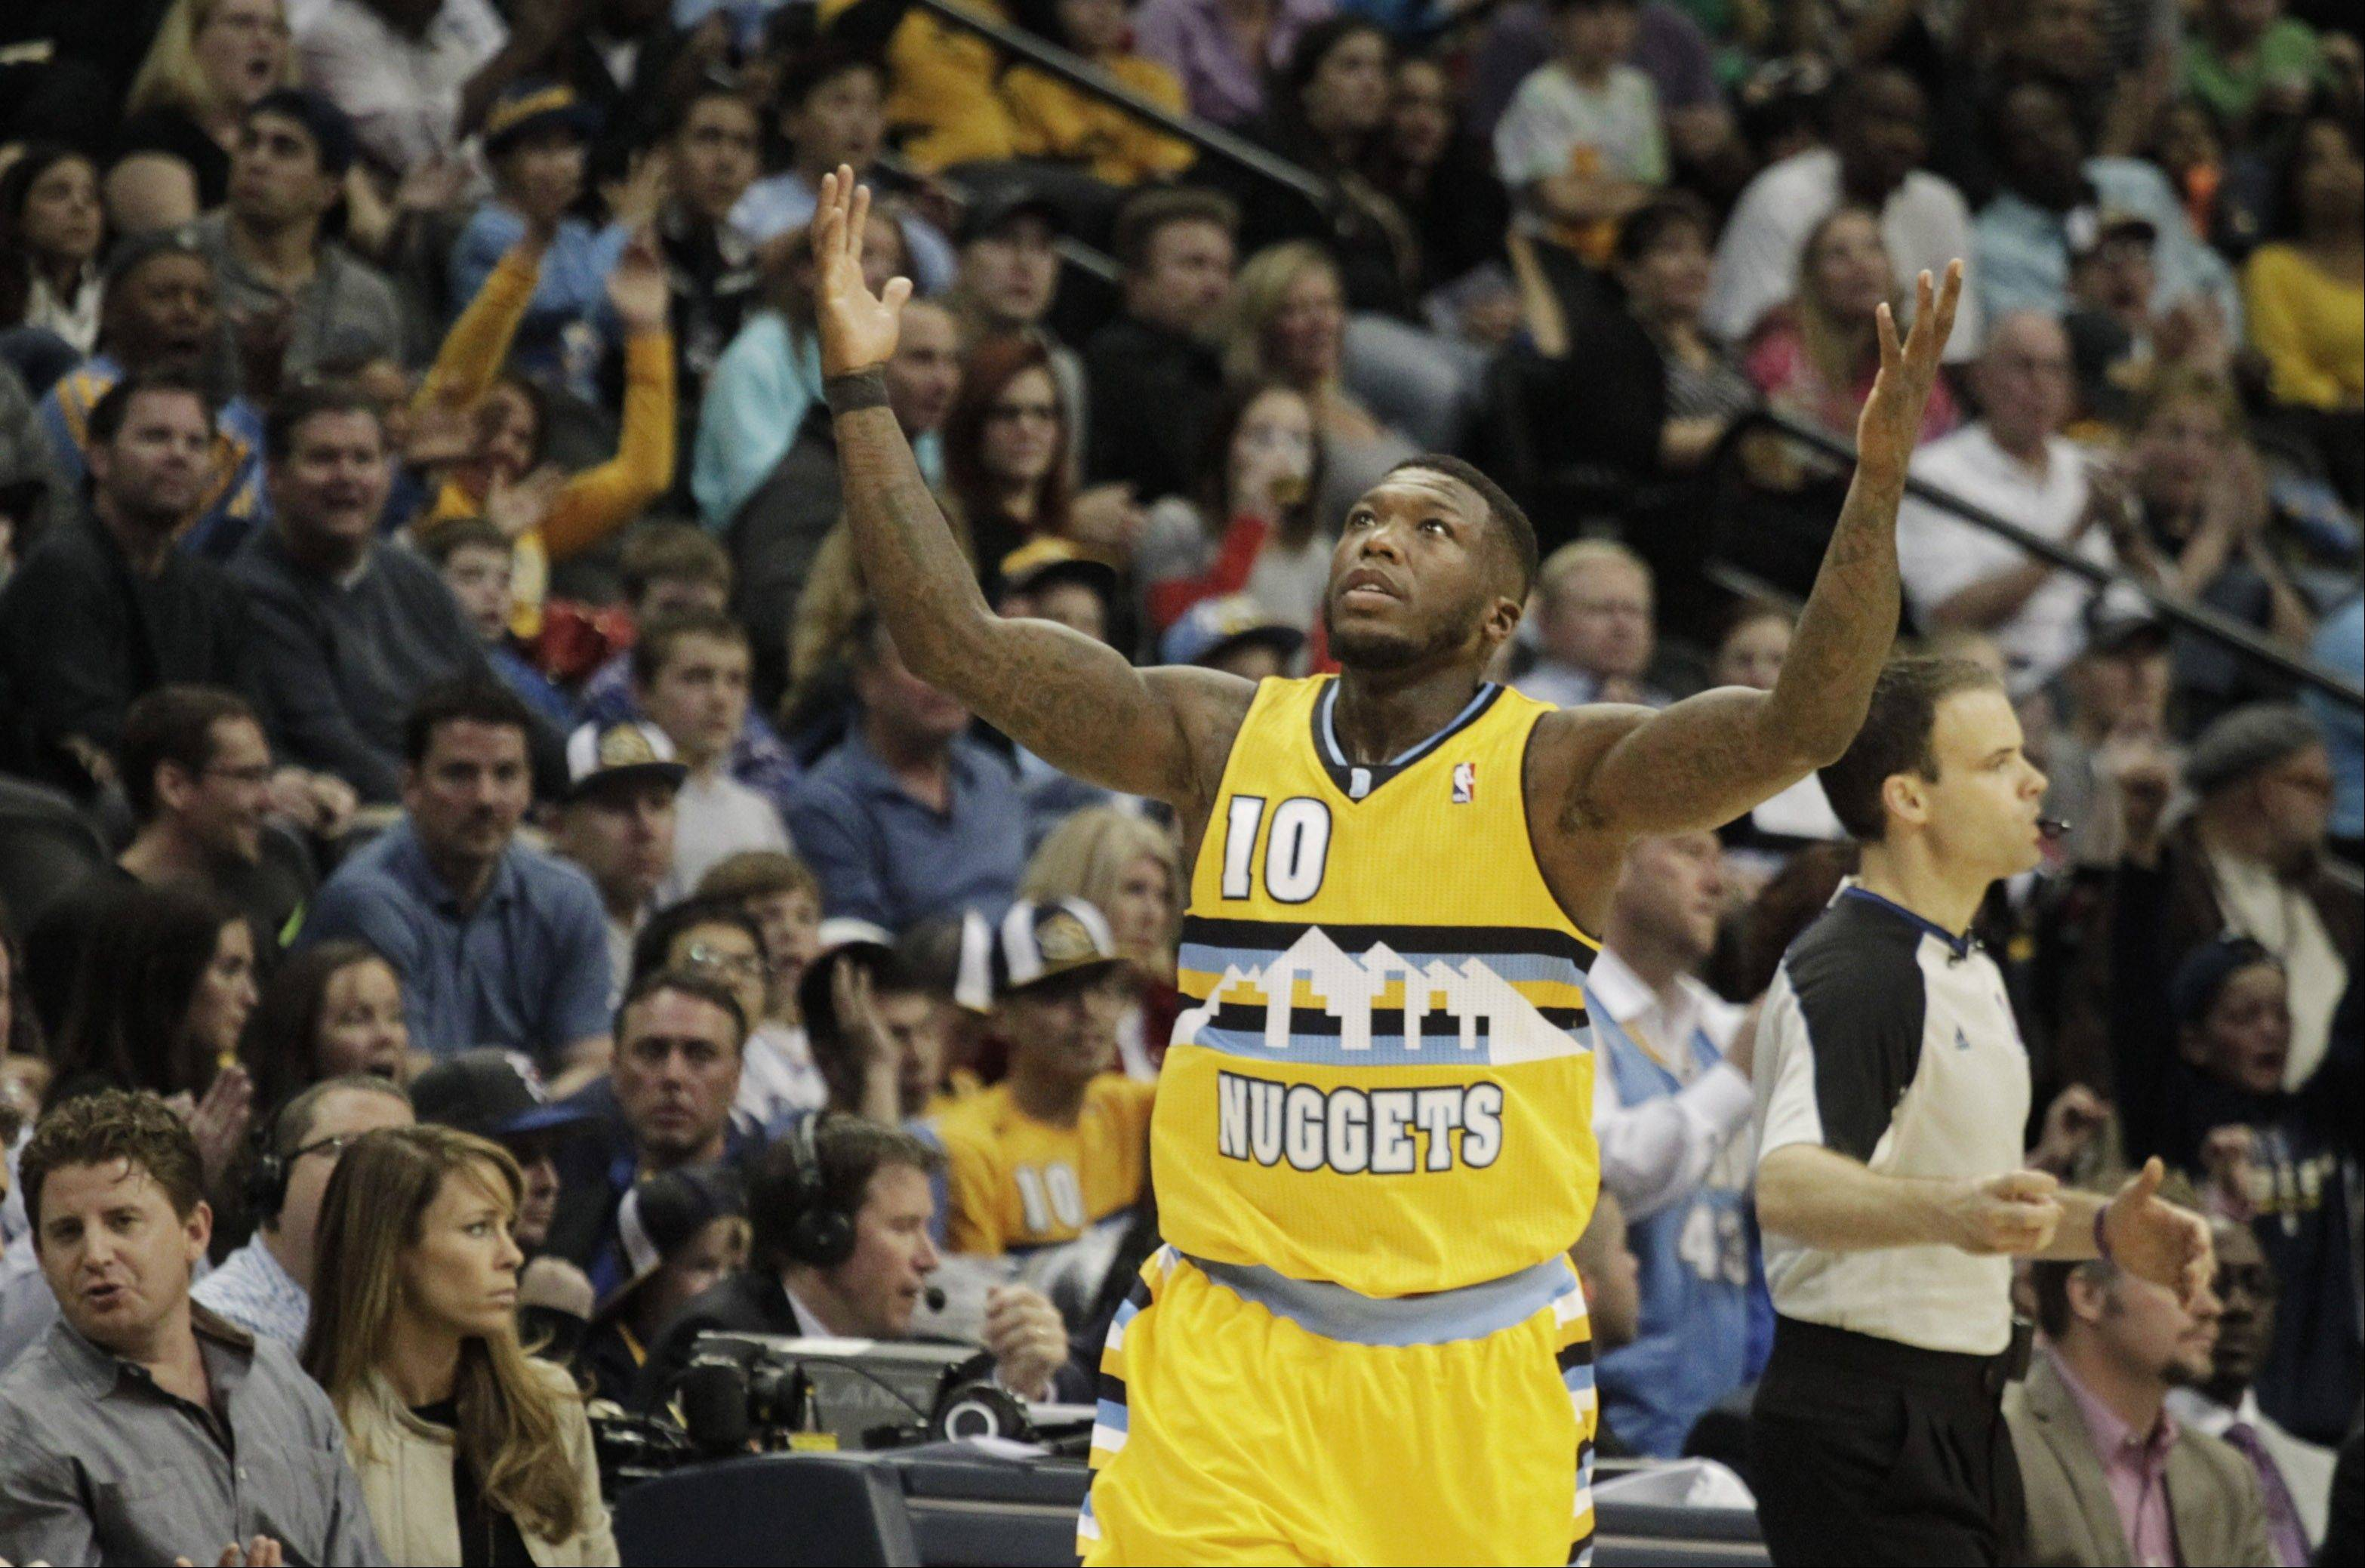 @Casption credit:Associated PressPlaying just 17 minutes per game, point guard Nate Robinson is giving Denver's offense a lift off the bench and averaging about 9 points per game.